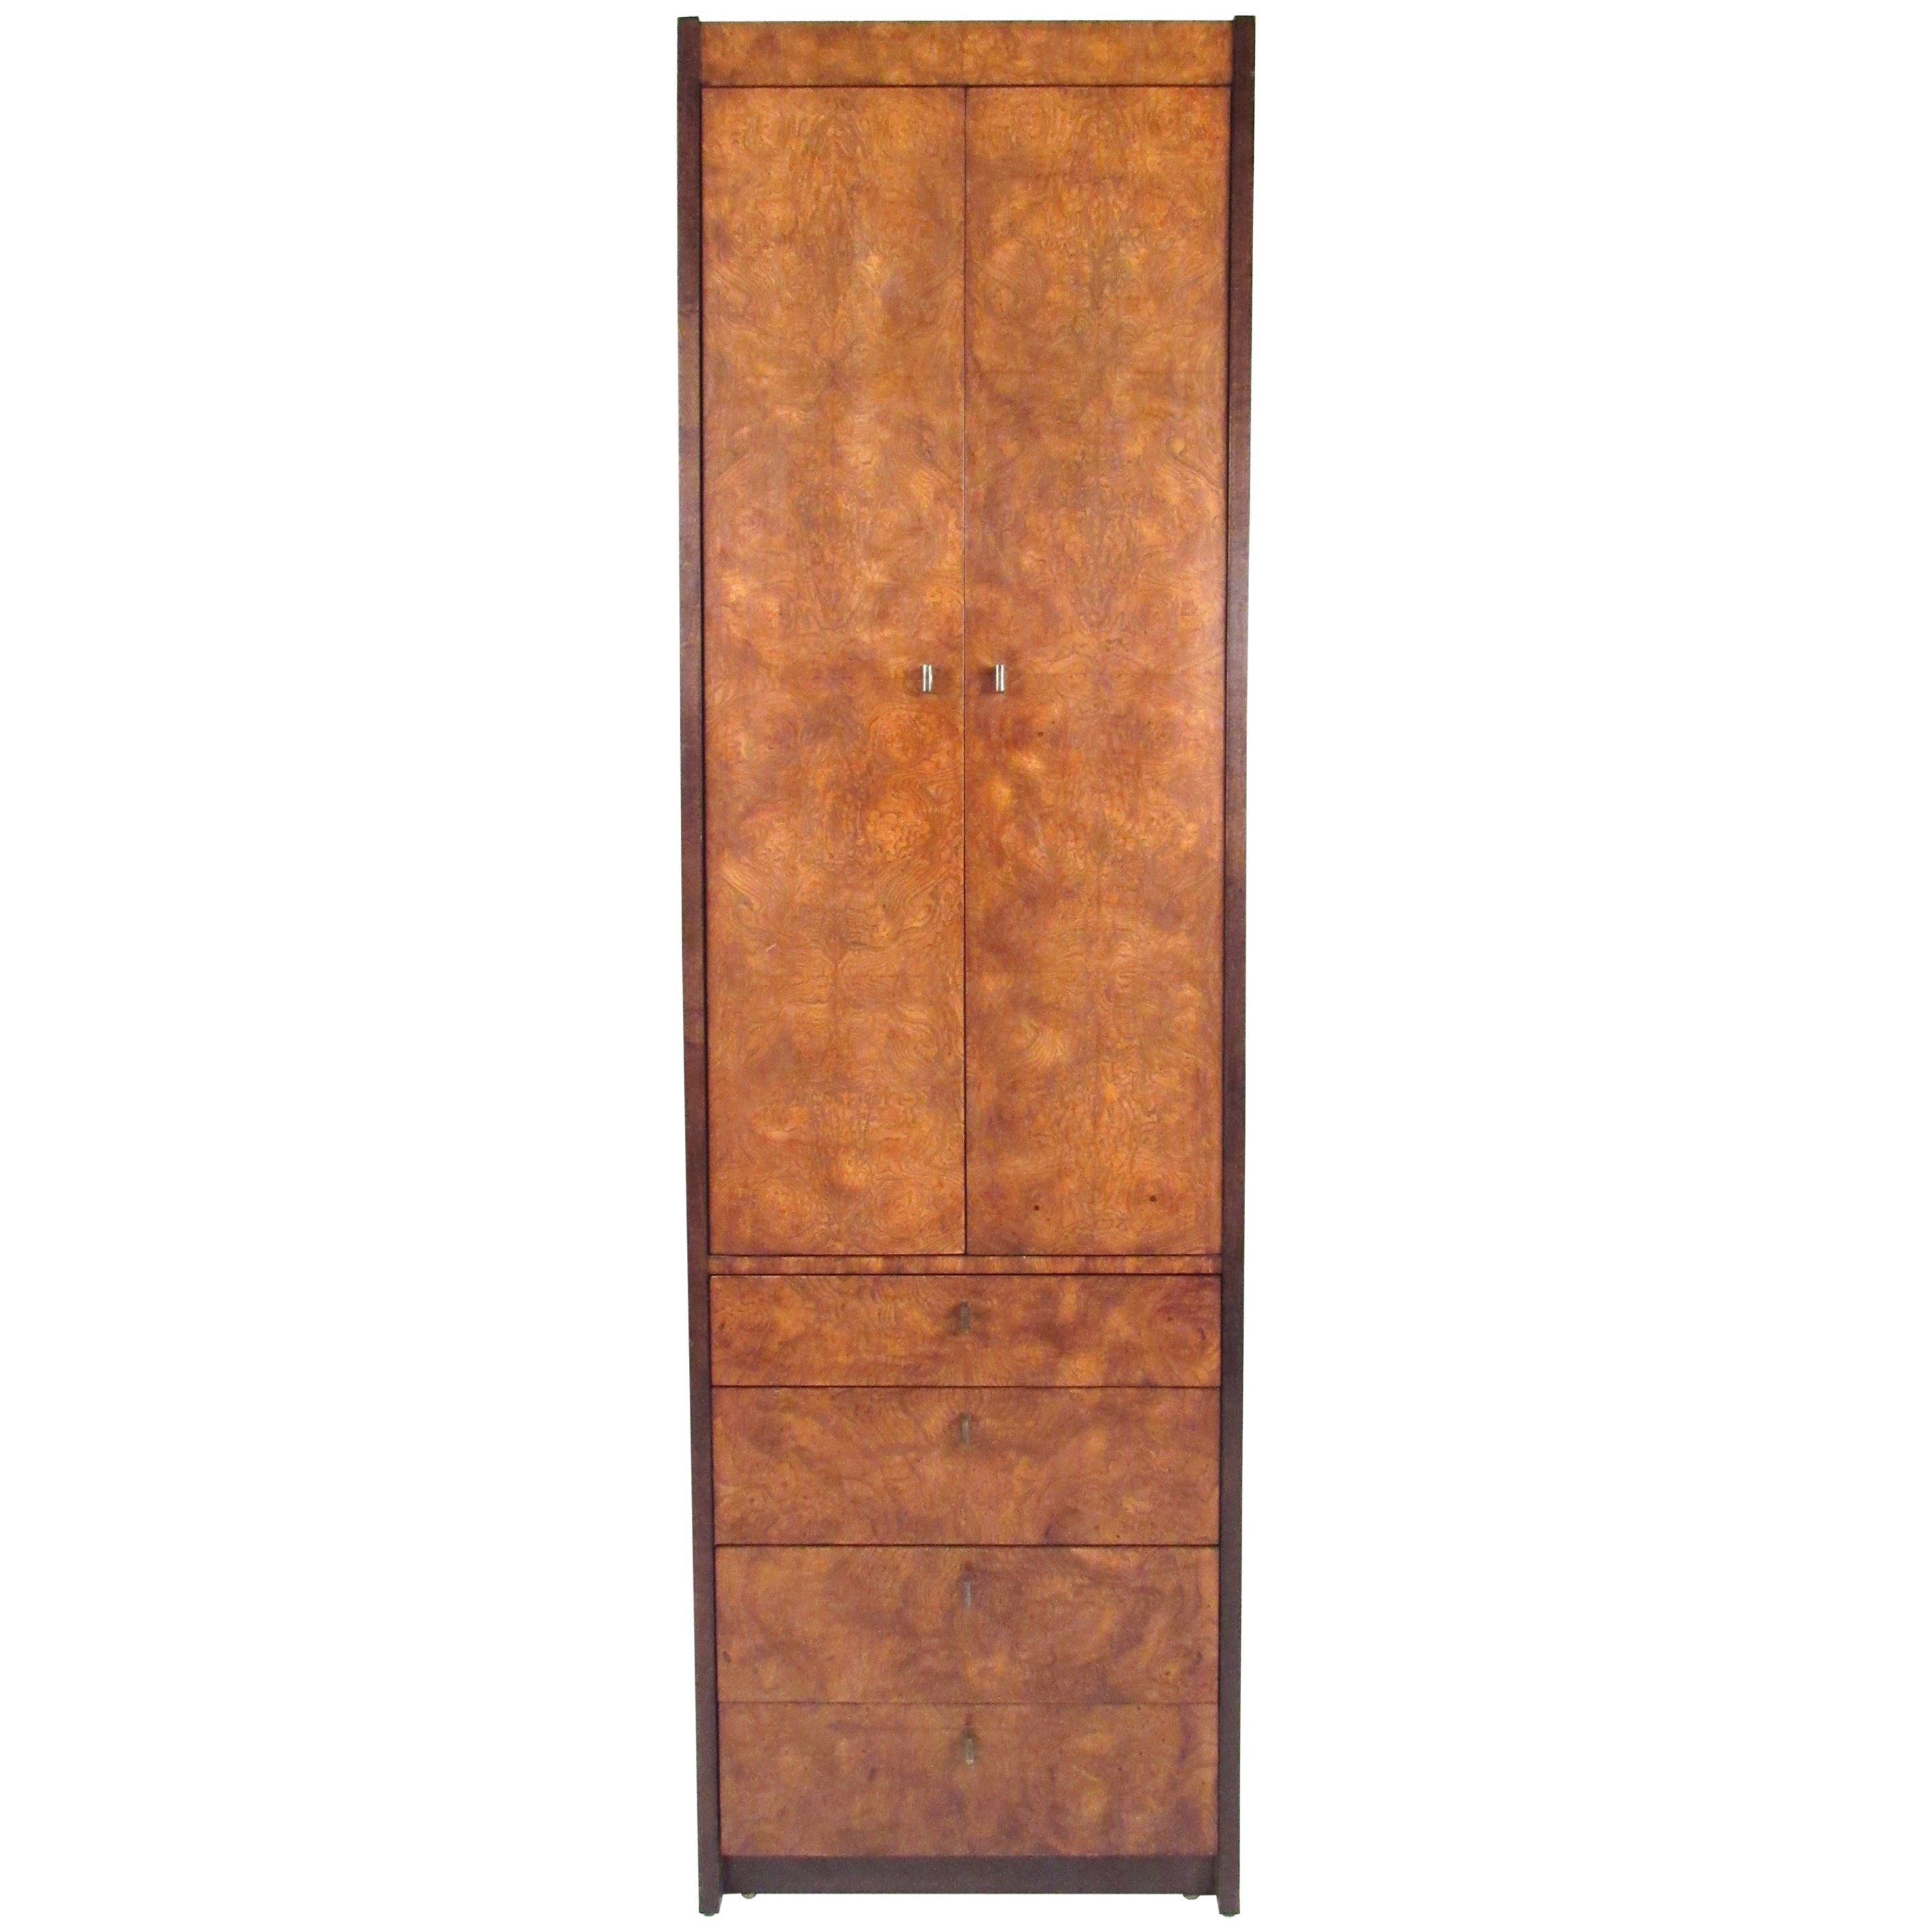 Burl wood linen cabinet by century furniture for sale at 1stdibs